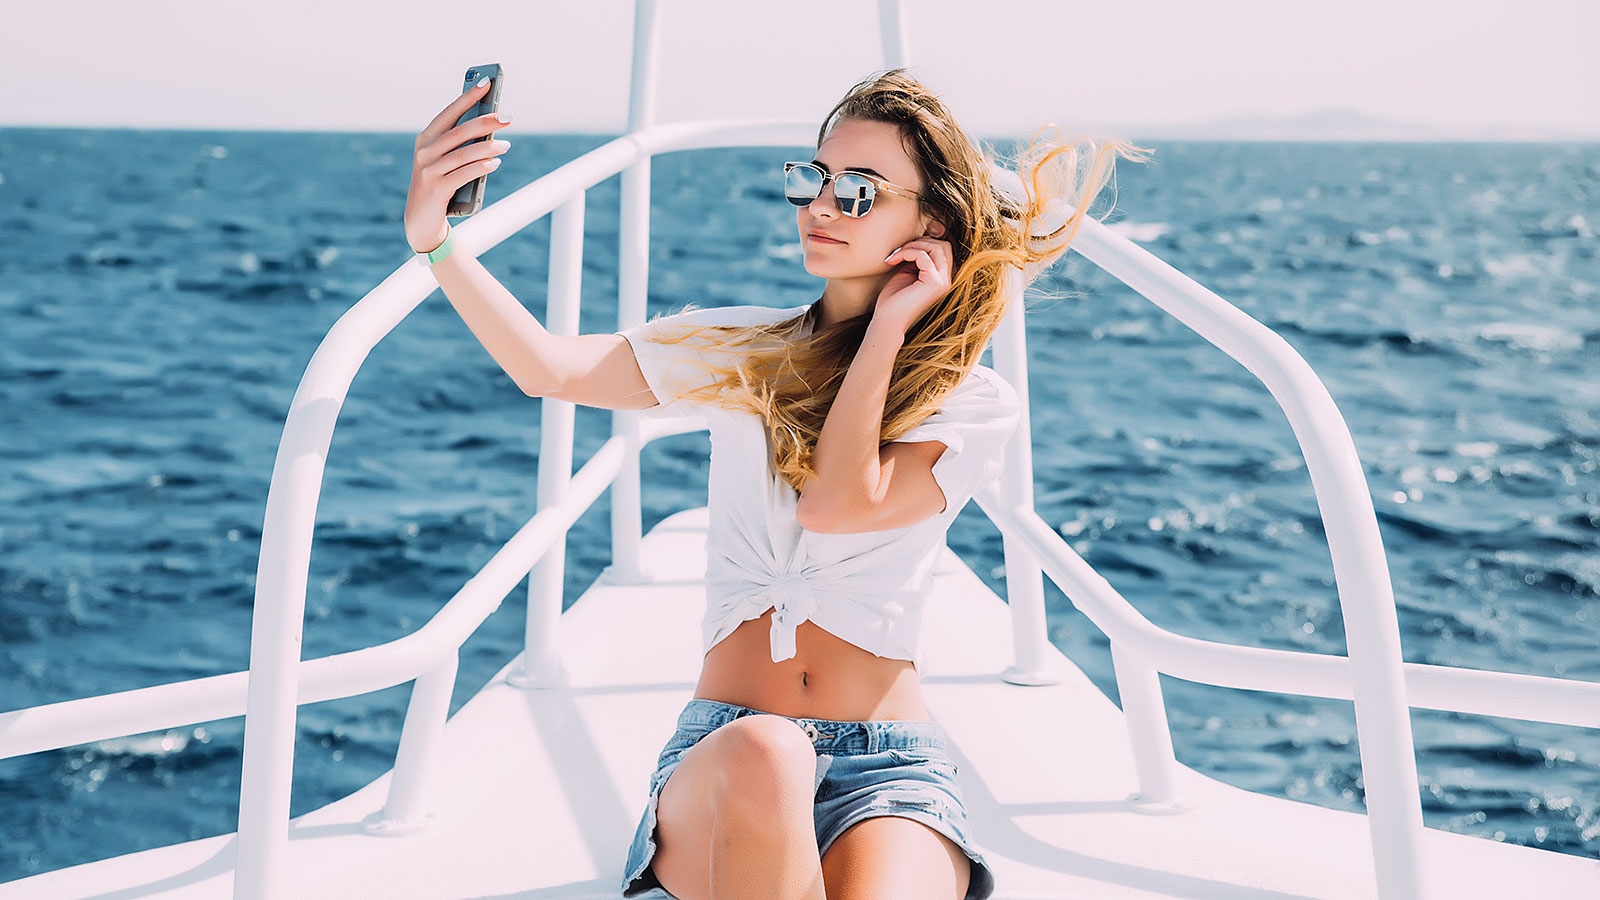 Hiring managers will soon be able to determine your personality by looking at your selfie